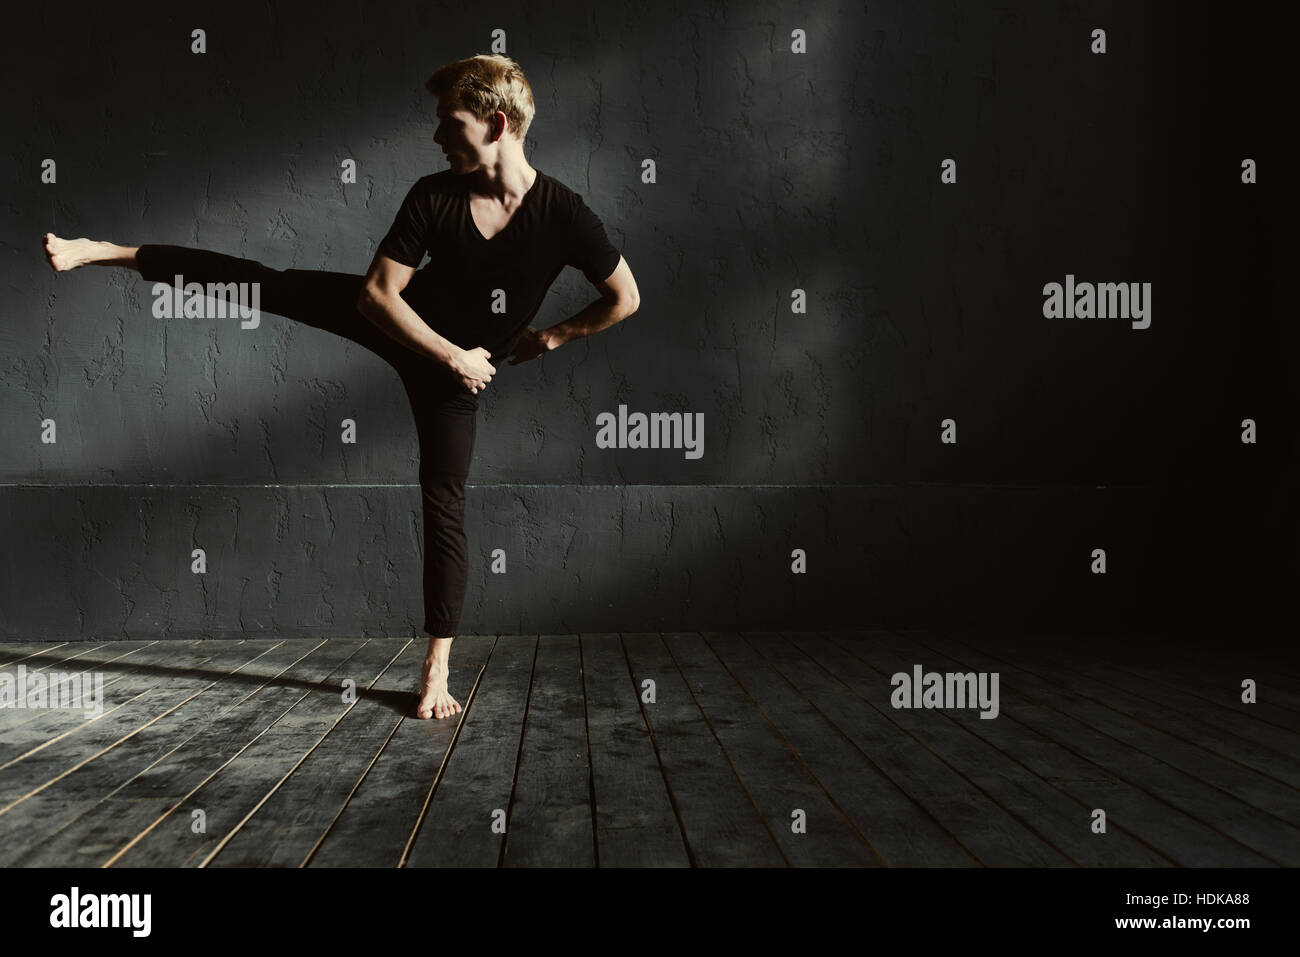 Trained young man dancing in the dark lighted room - Stock Image